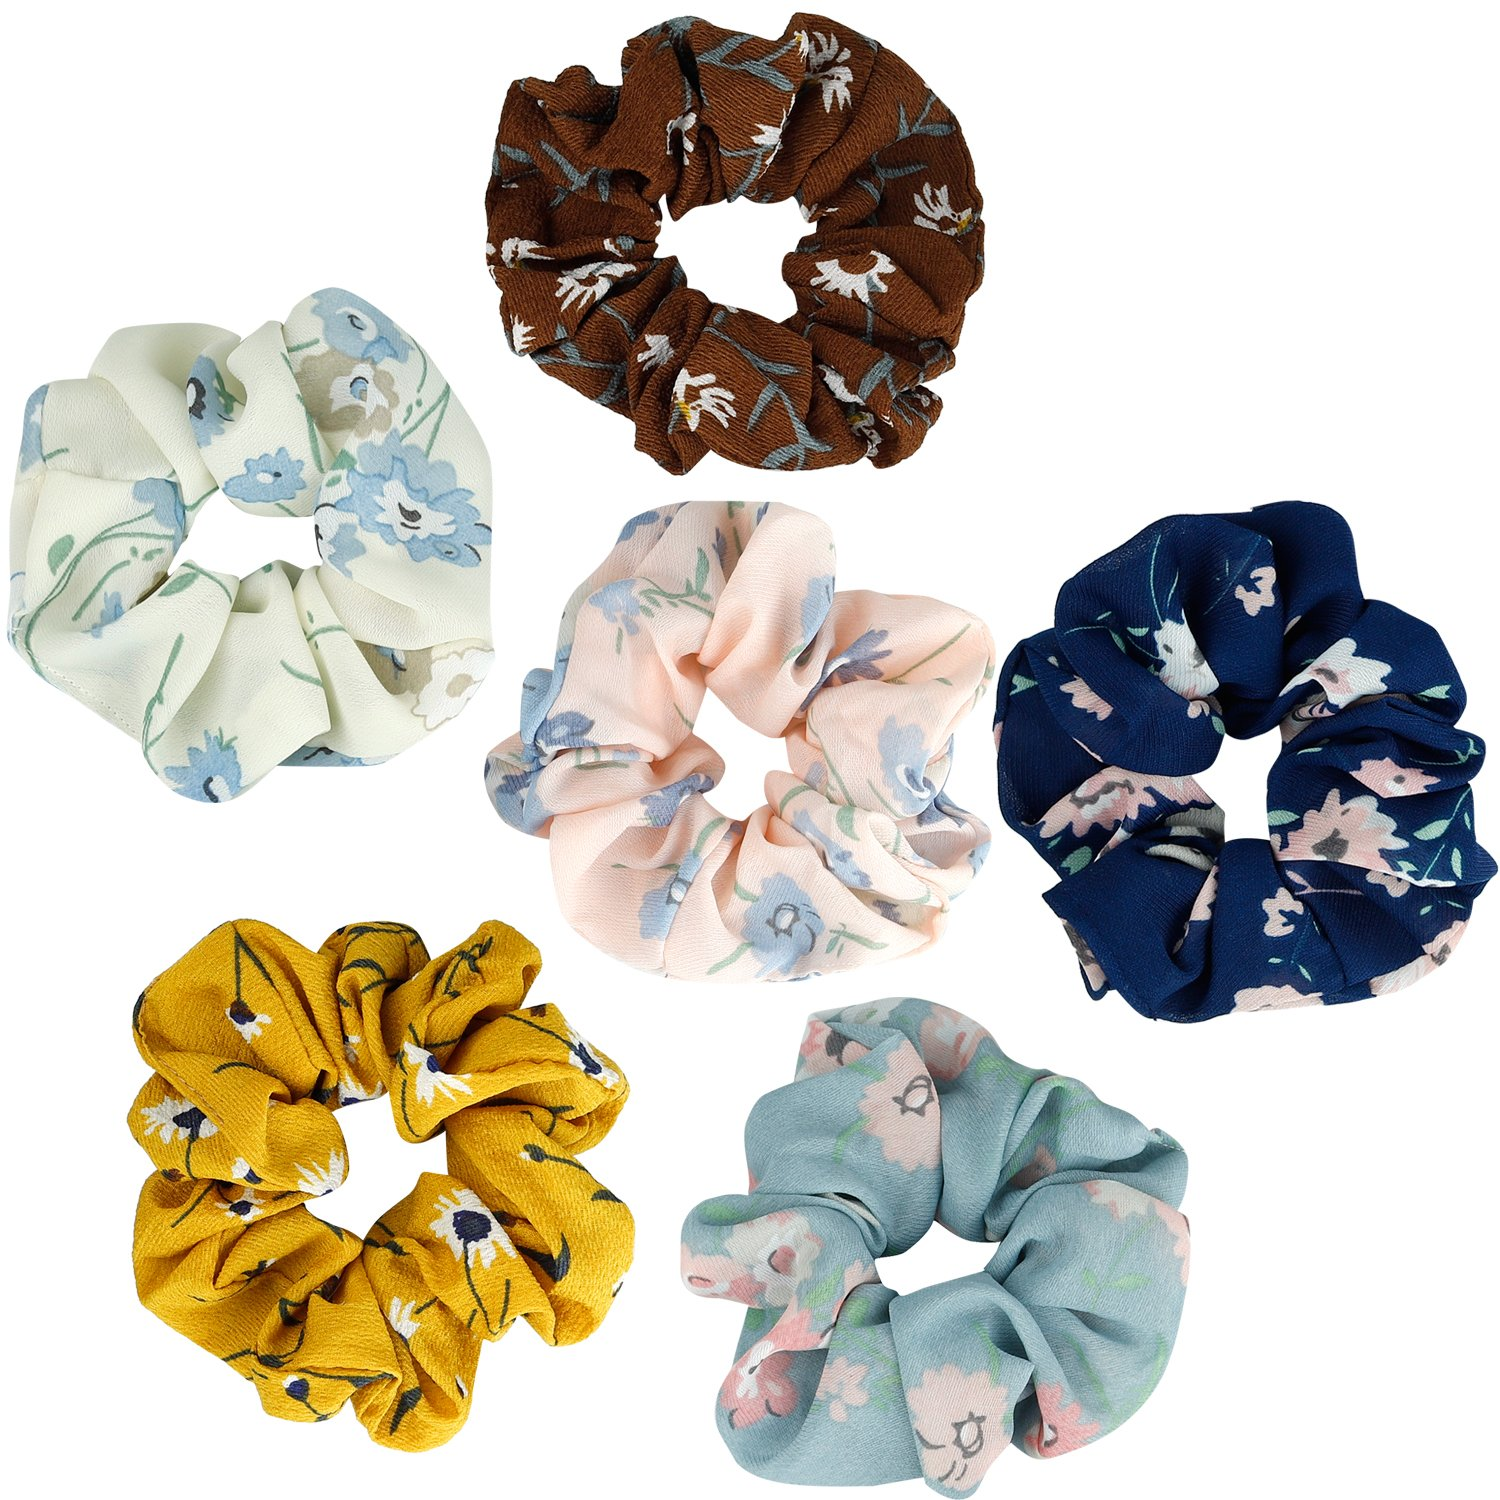 KECUCO 12A Colors Women's Chiffon Flower Hair Scrunchies Hair Bow Chiffon Ponytail Holder,Including 8 Colors Chiffon Flower Hair Scrunchies and 4A Solid Colors Chiffon Hair Ties (STYLE 1)